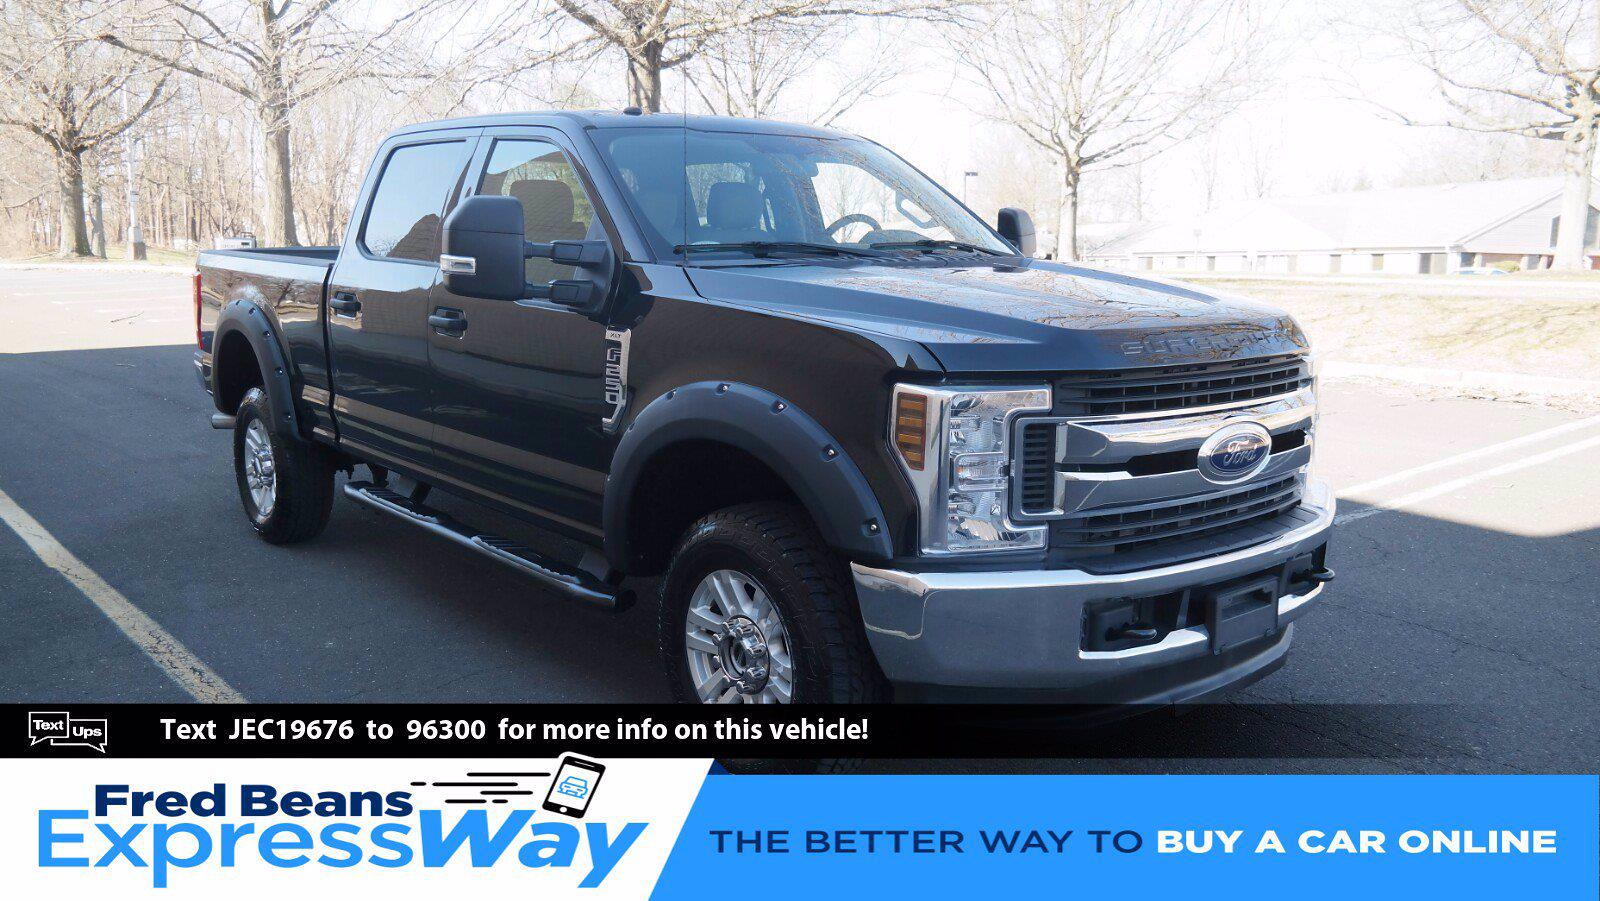 2018 Ford F-250 Crew Cab 4x4, Pickup #FL1102J - photo 1